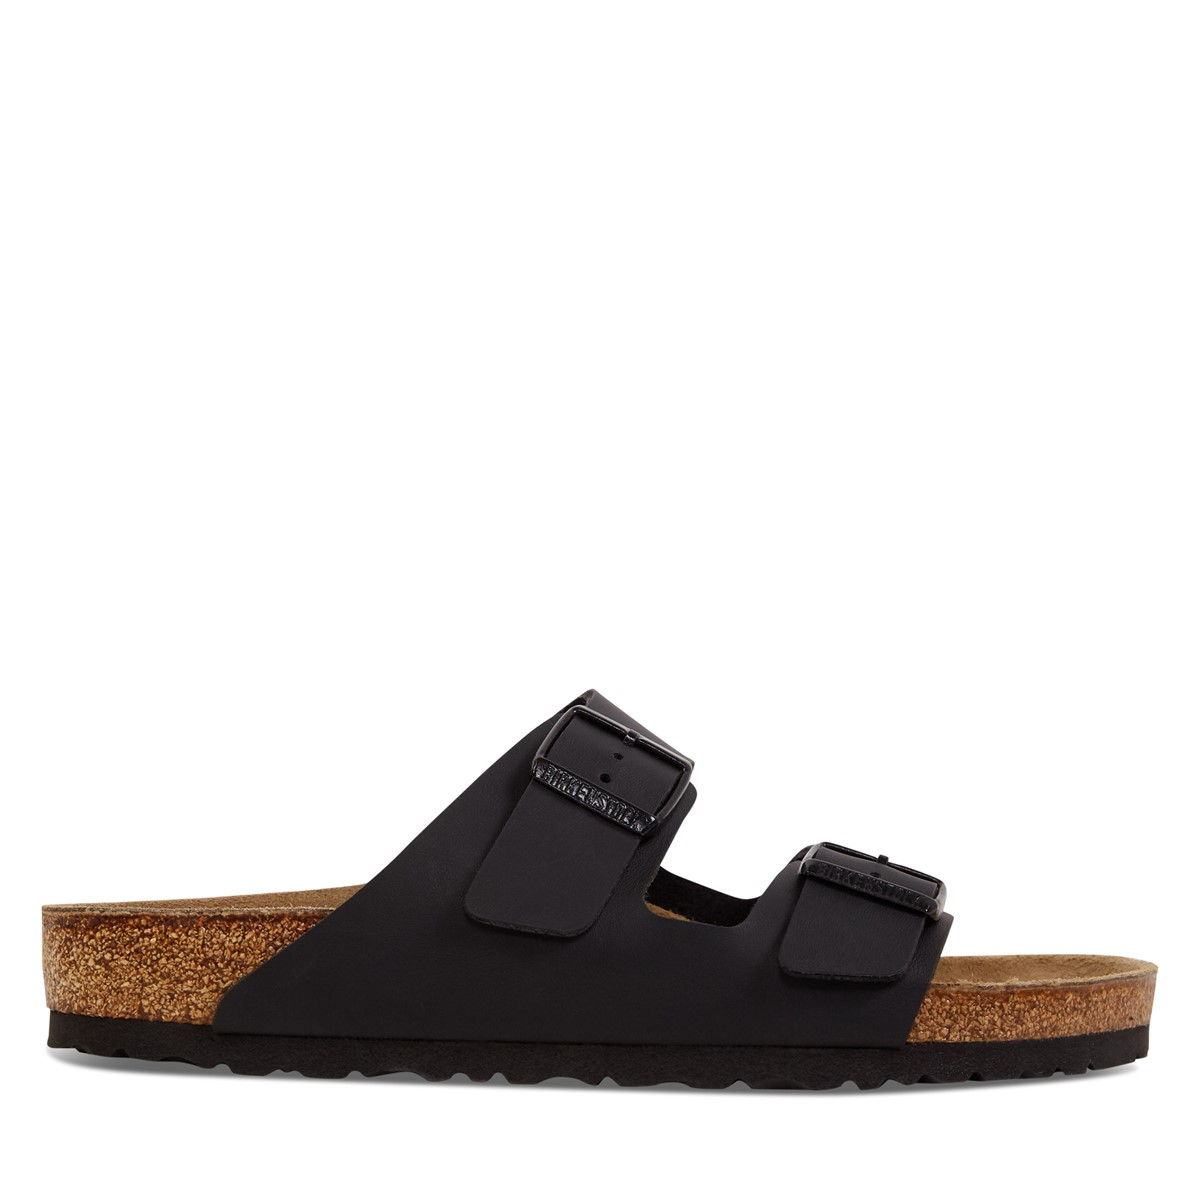 Men's Arizona Sandal in Black